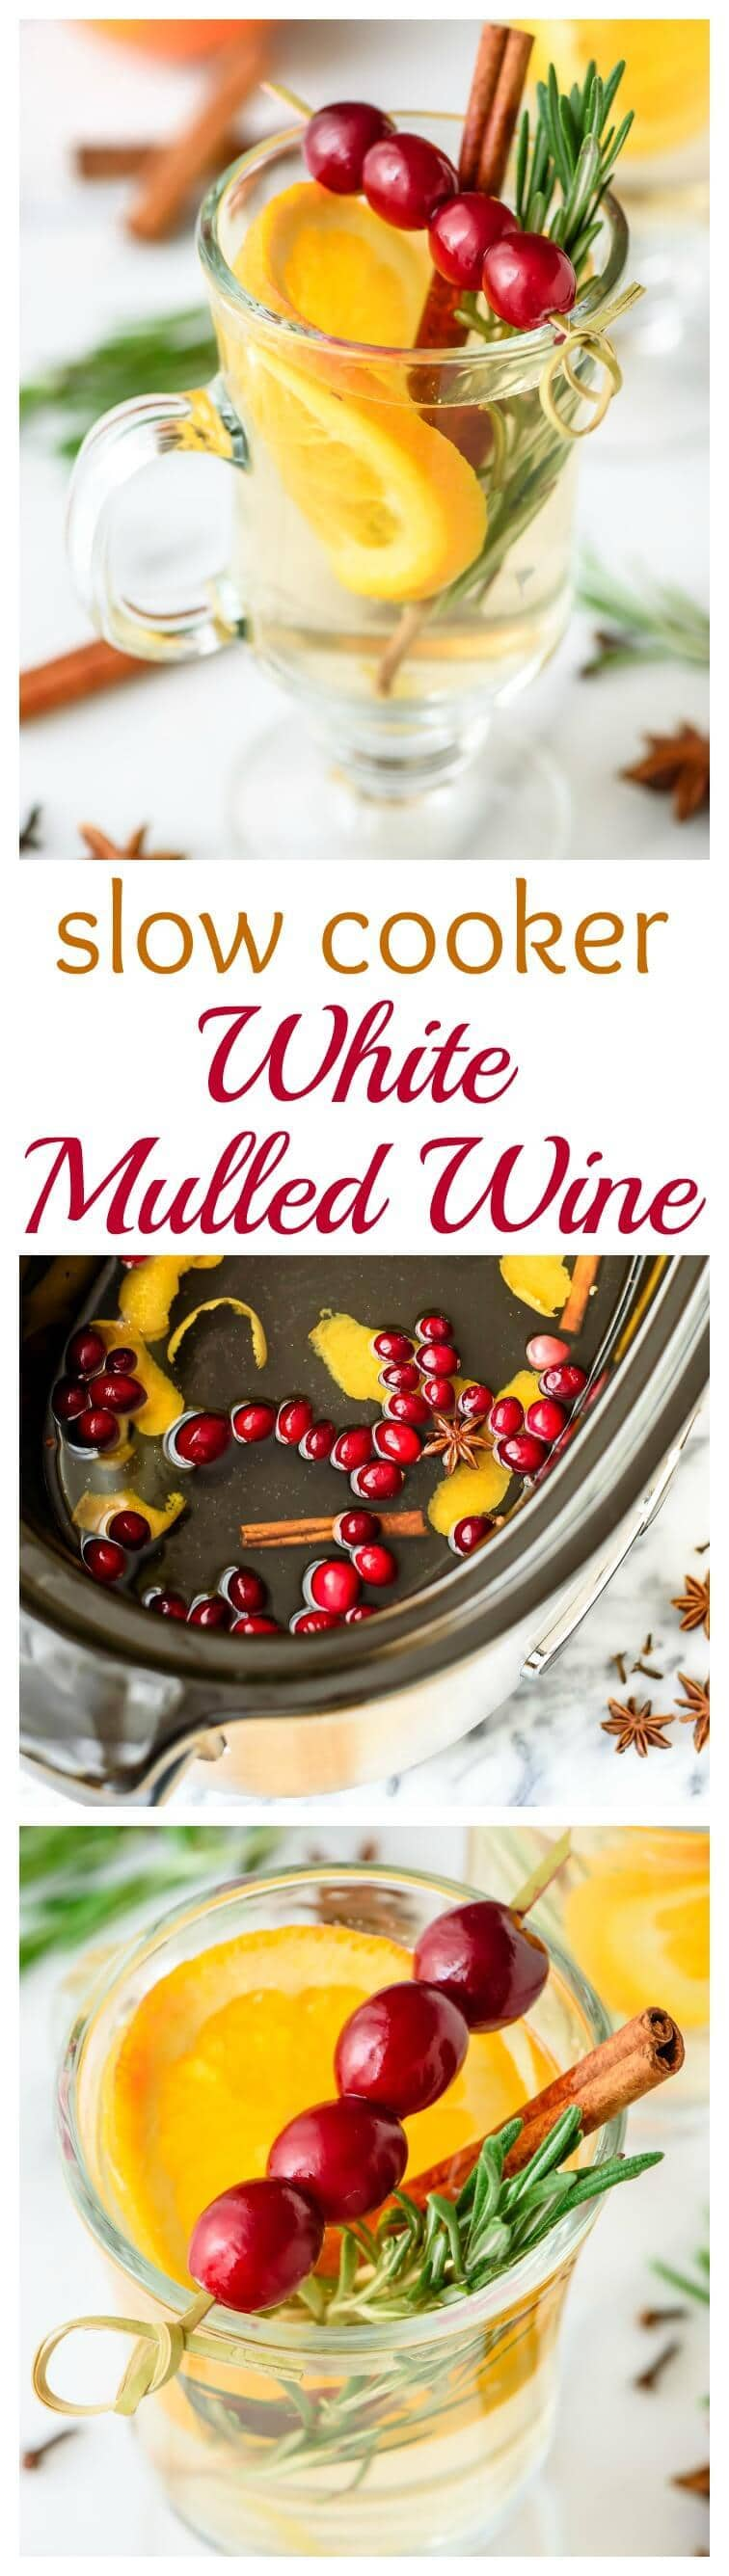 A white wine version of classic mulled wine that's made in the slow cooker! This drink is so pretty and festive, easy and inexpensive to make in big batches, and everyone loves it!